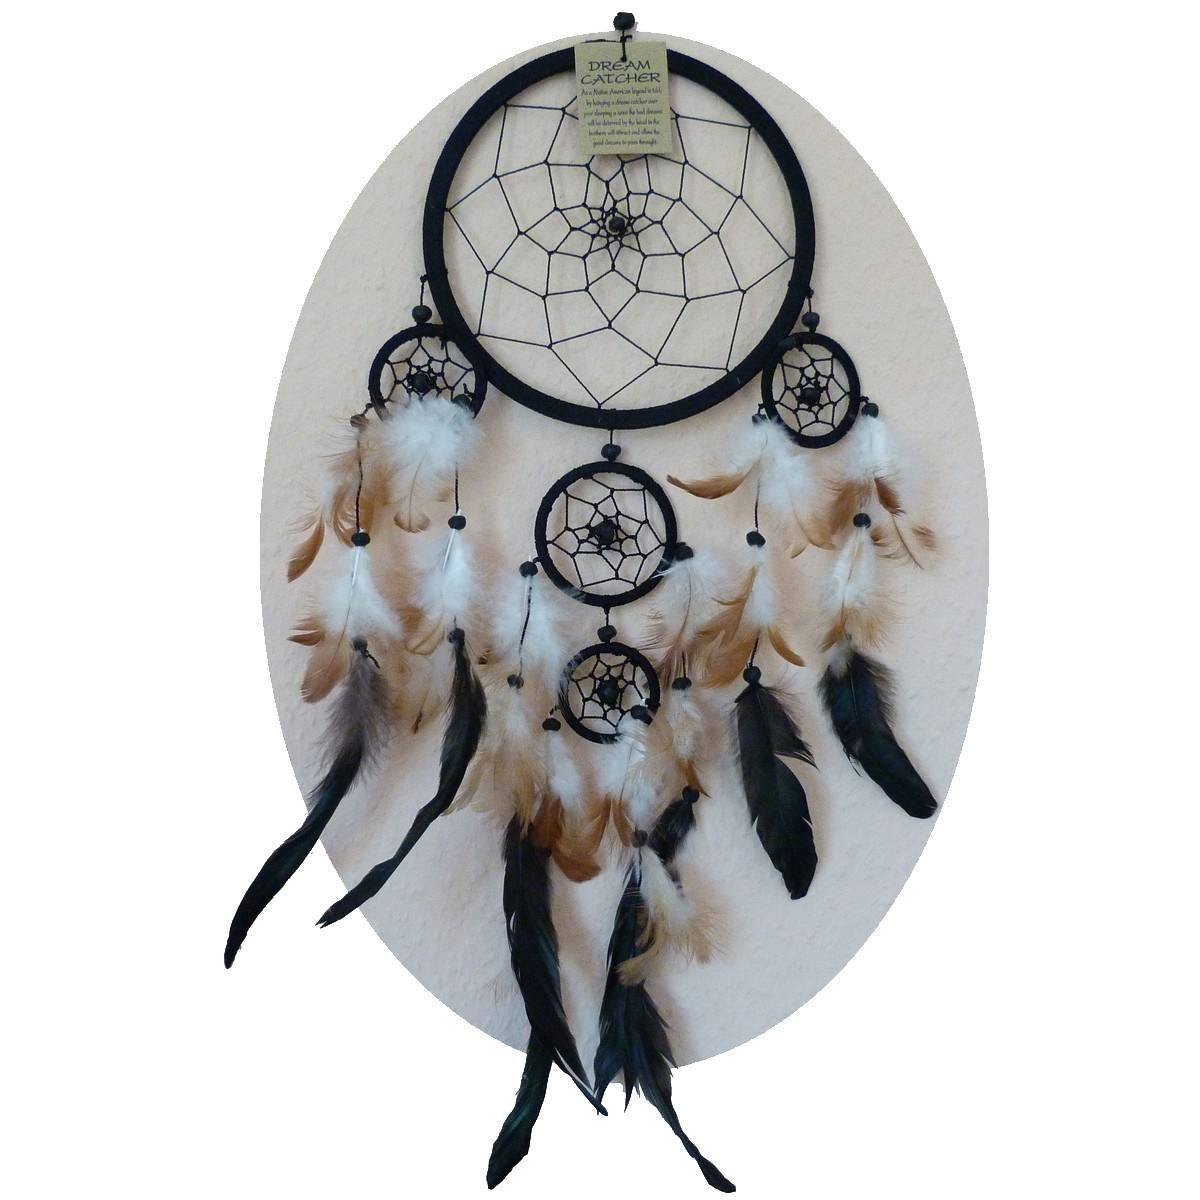 traumf nger dreamcatcher federn deko geschenk windspiel 32 cm. Black Bedroom Furniture Sets. Home Design Ideas